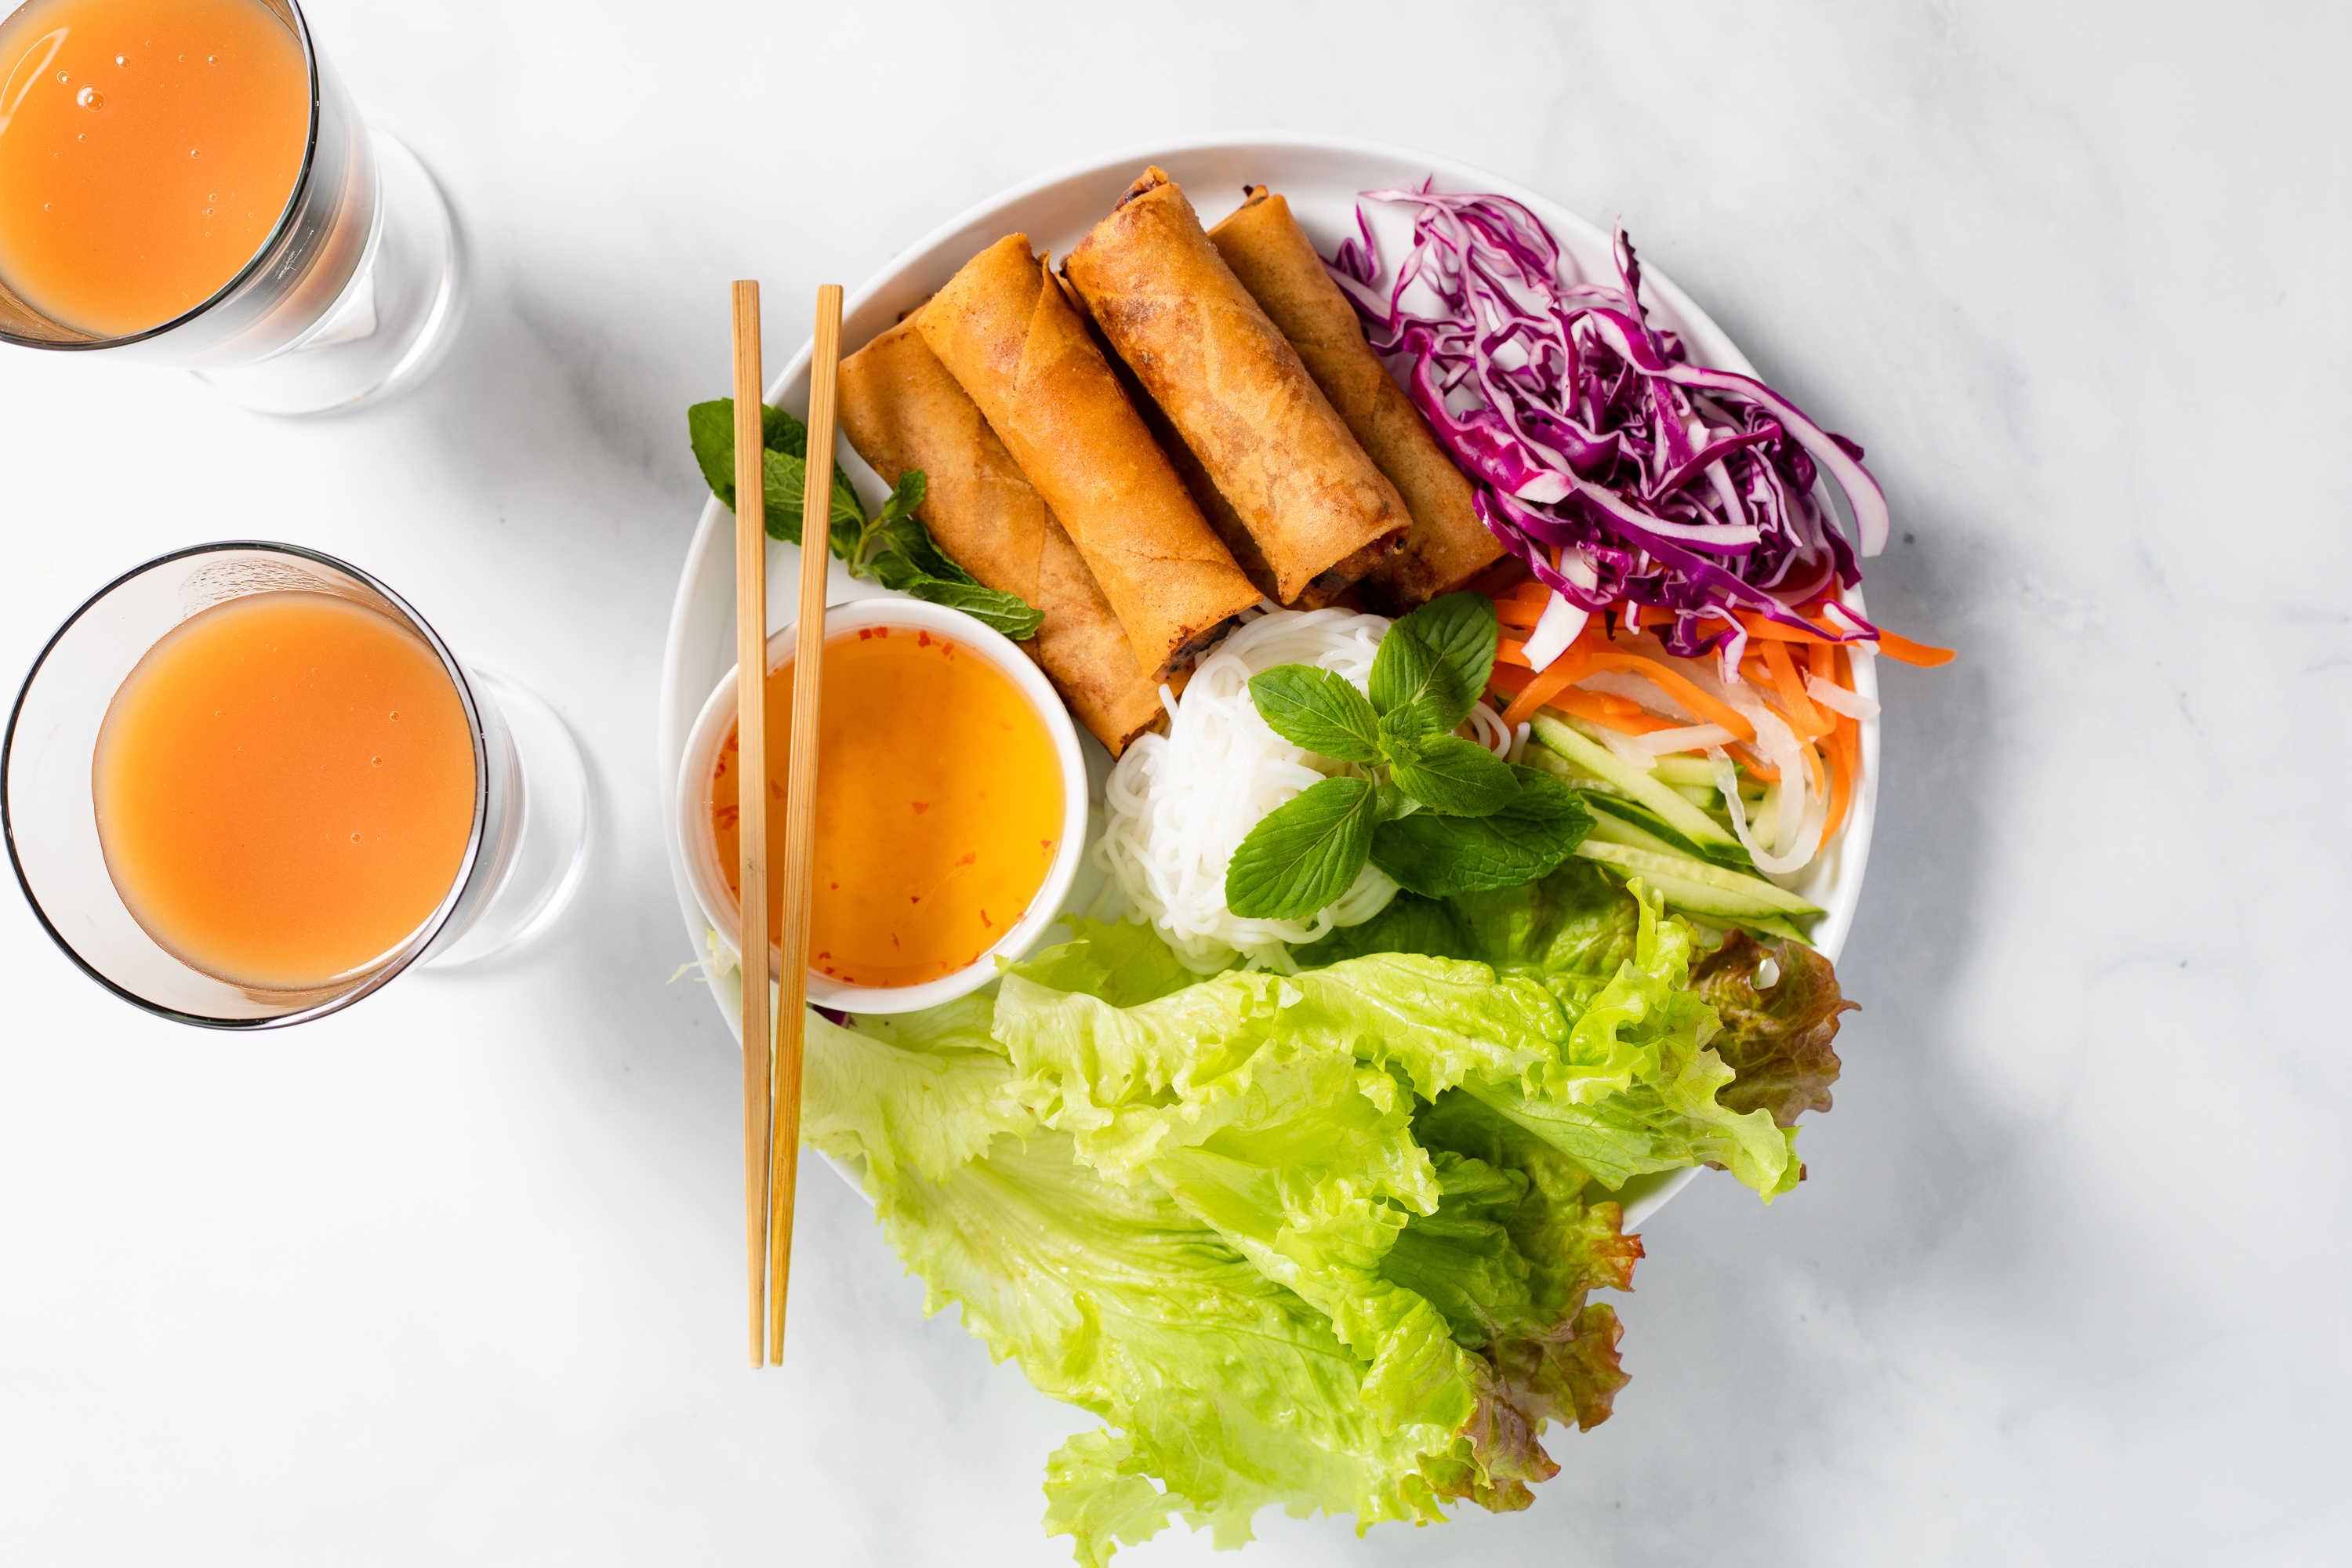 A plate filled with Vietnamese egg rolls with sides of vegetables and a dipping sauce,